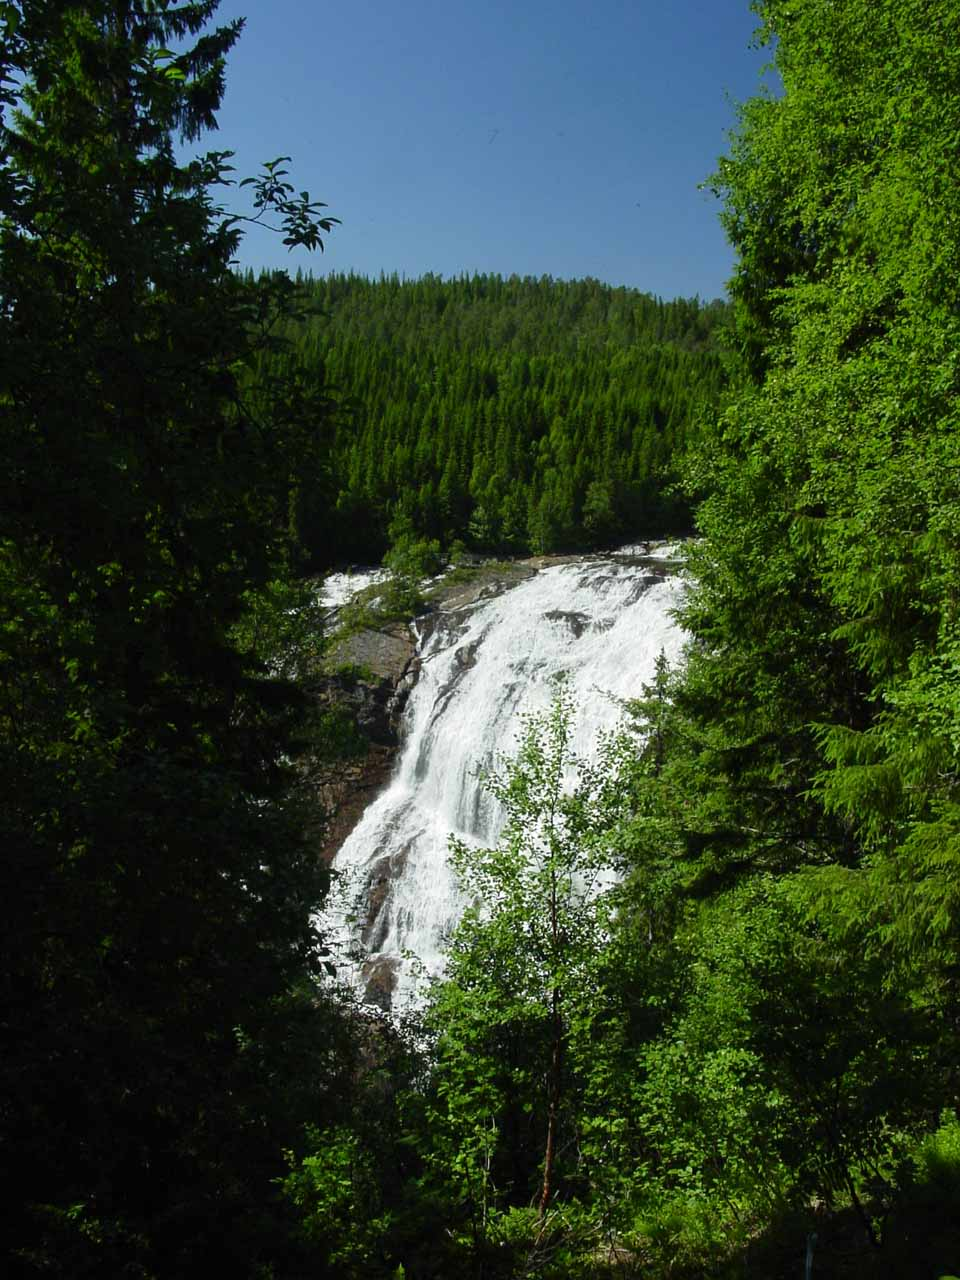 When I leaned against the fence, this was the view of Grongstadfossen that I got